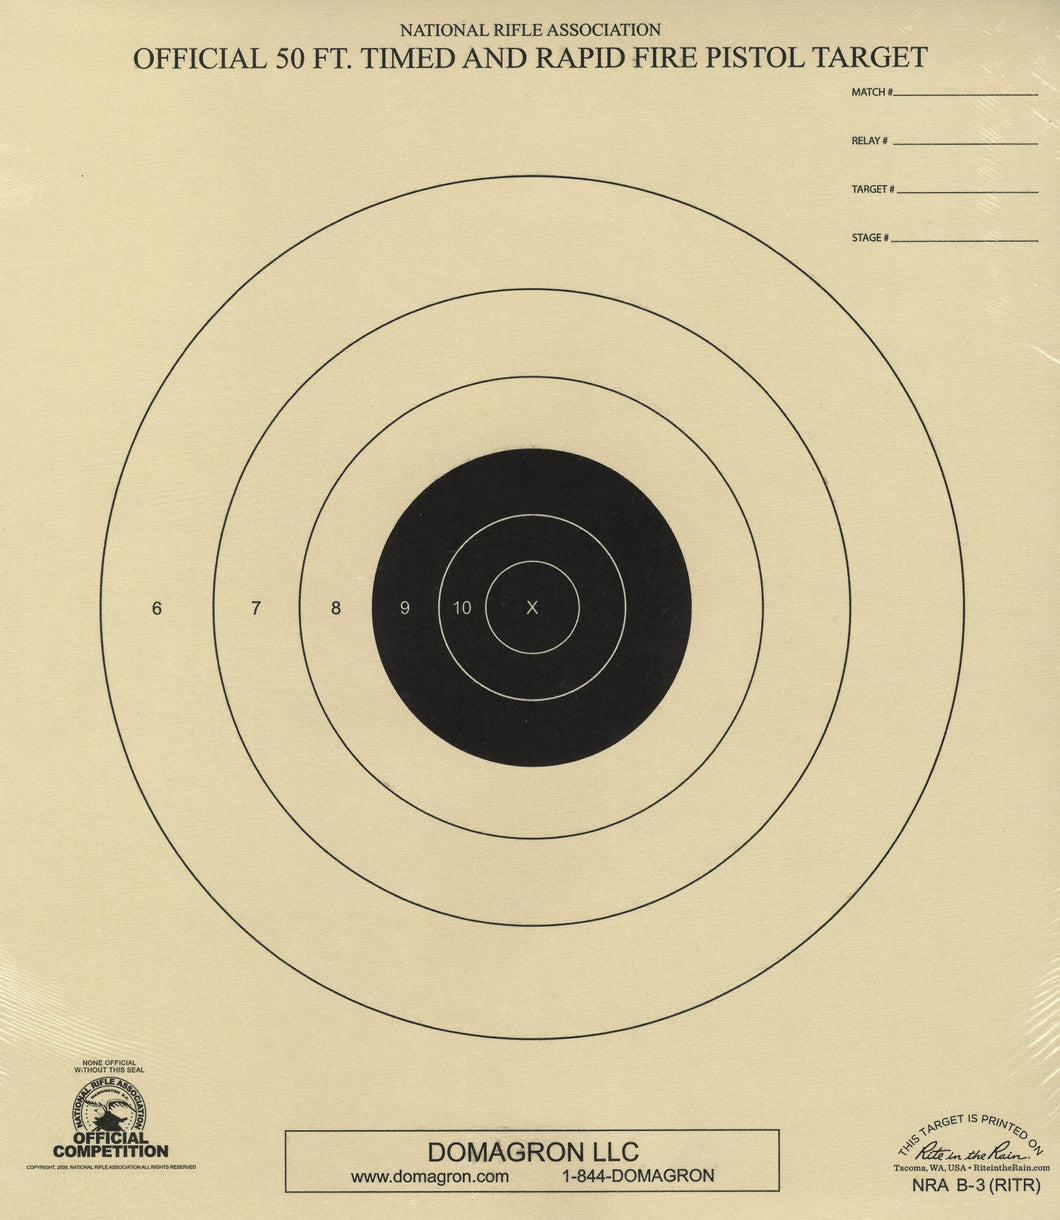 B-3 Weather Resistant 50 Foot Timed and Rapid Fire Pistol Target Official NRA Target (48 Pack) with Rite in The Rain Technology - DOMAGRON